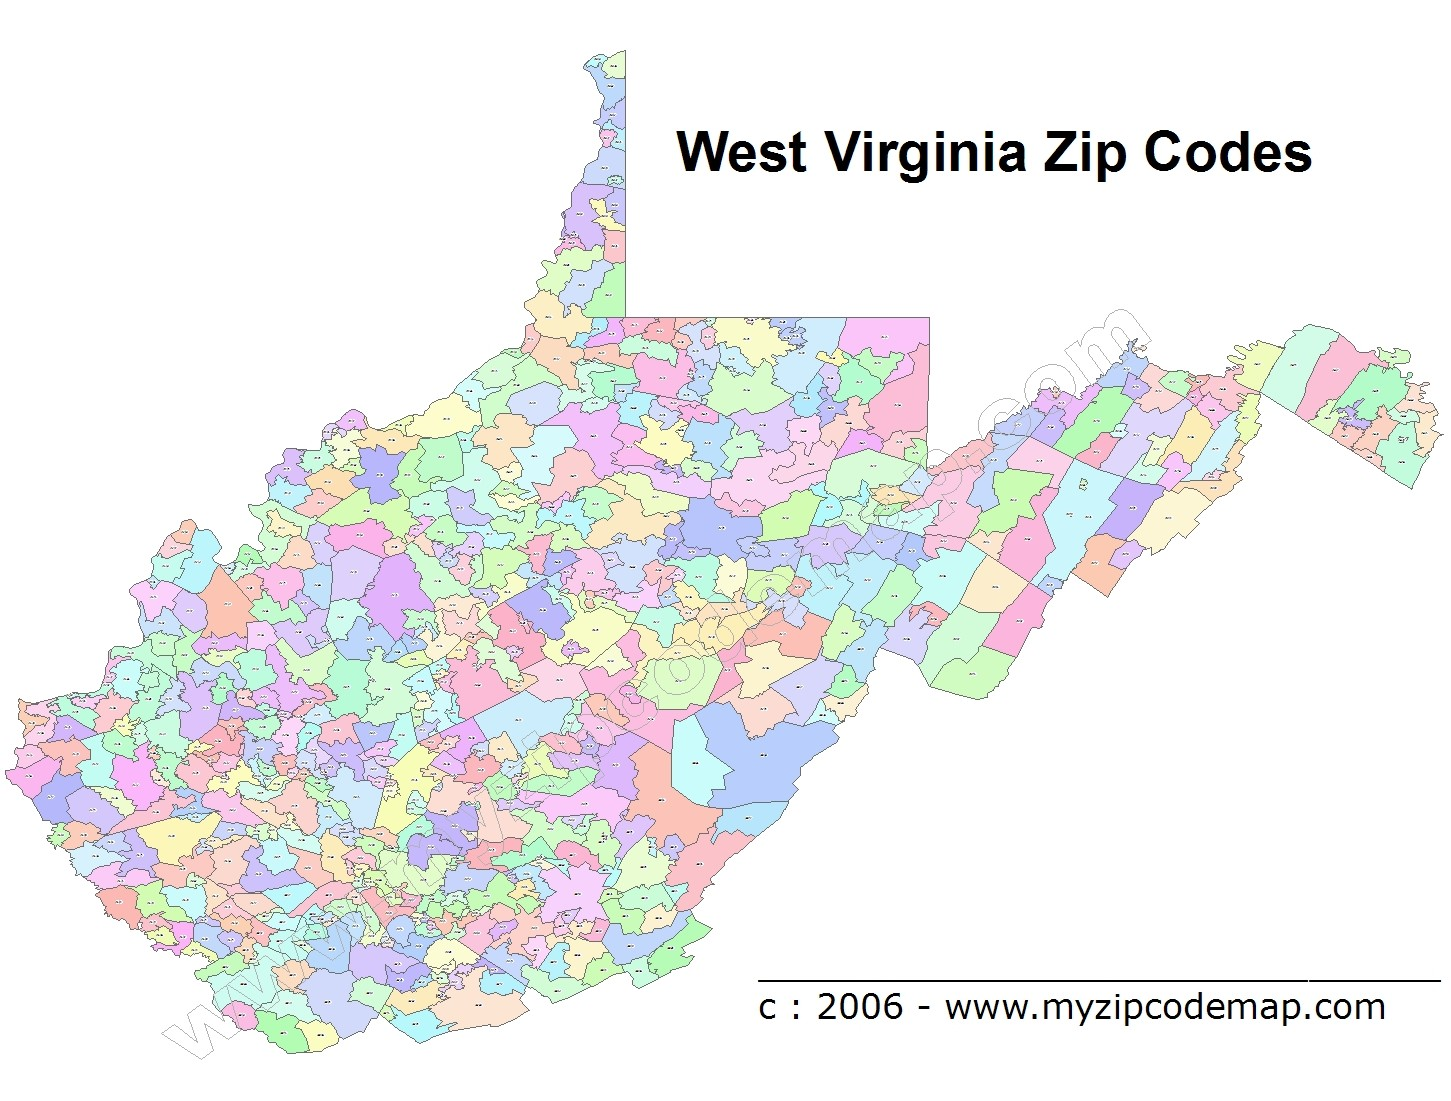 Map Of Central Ma Zip Code Pictures To Pin On Pinterest PinsDaddy - Free map of united states zip codes